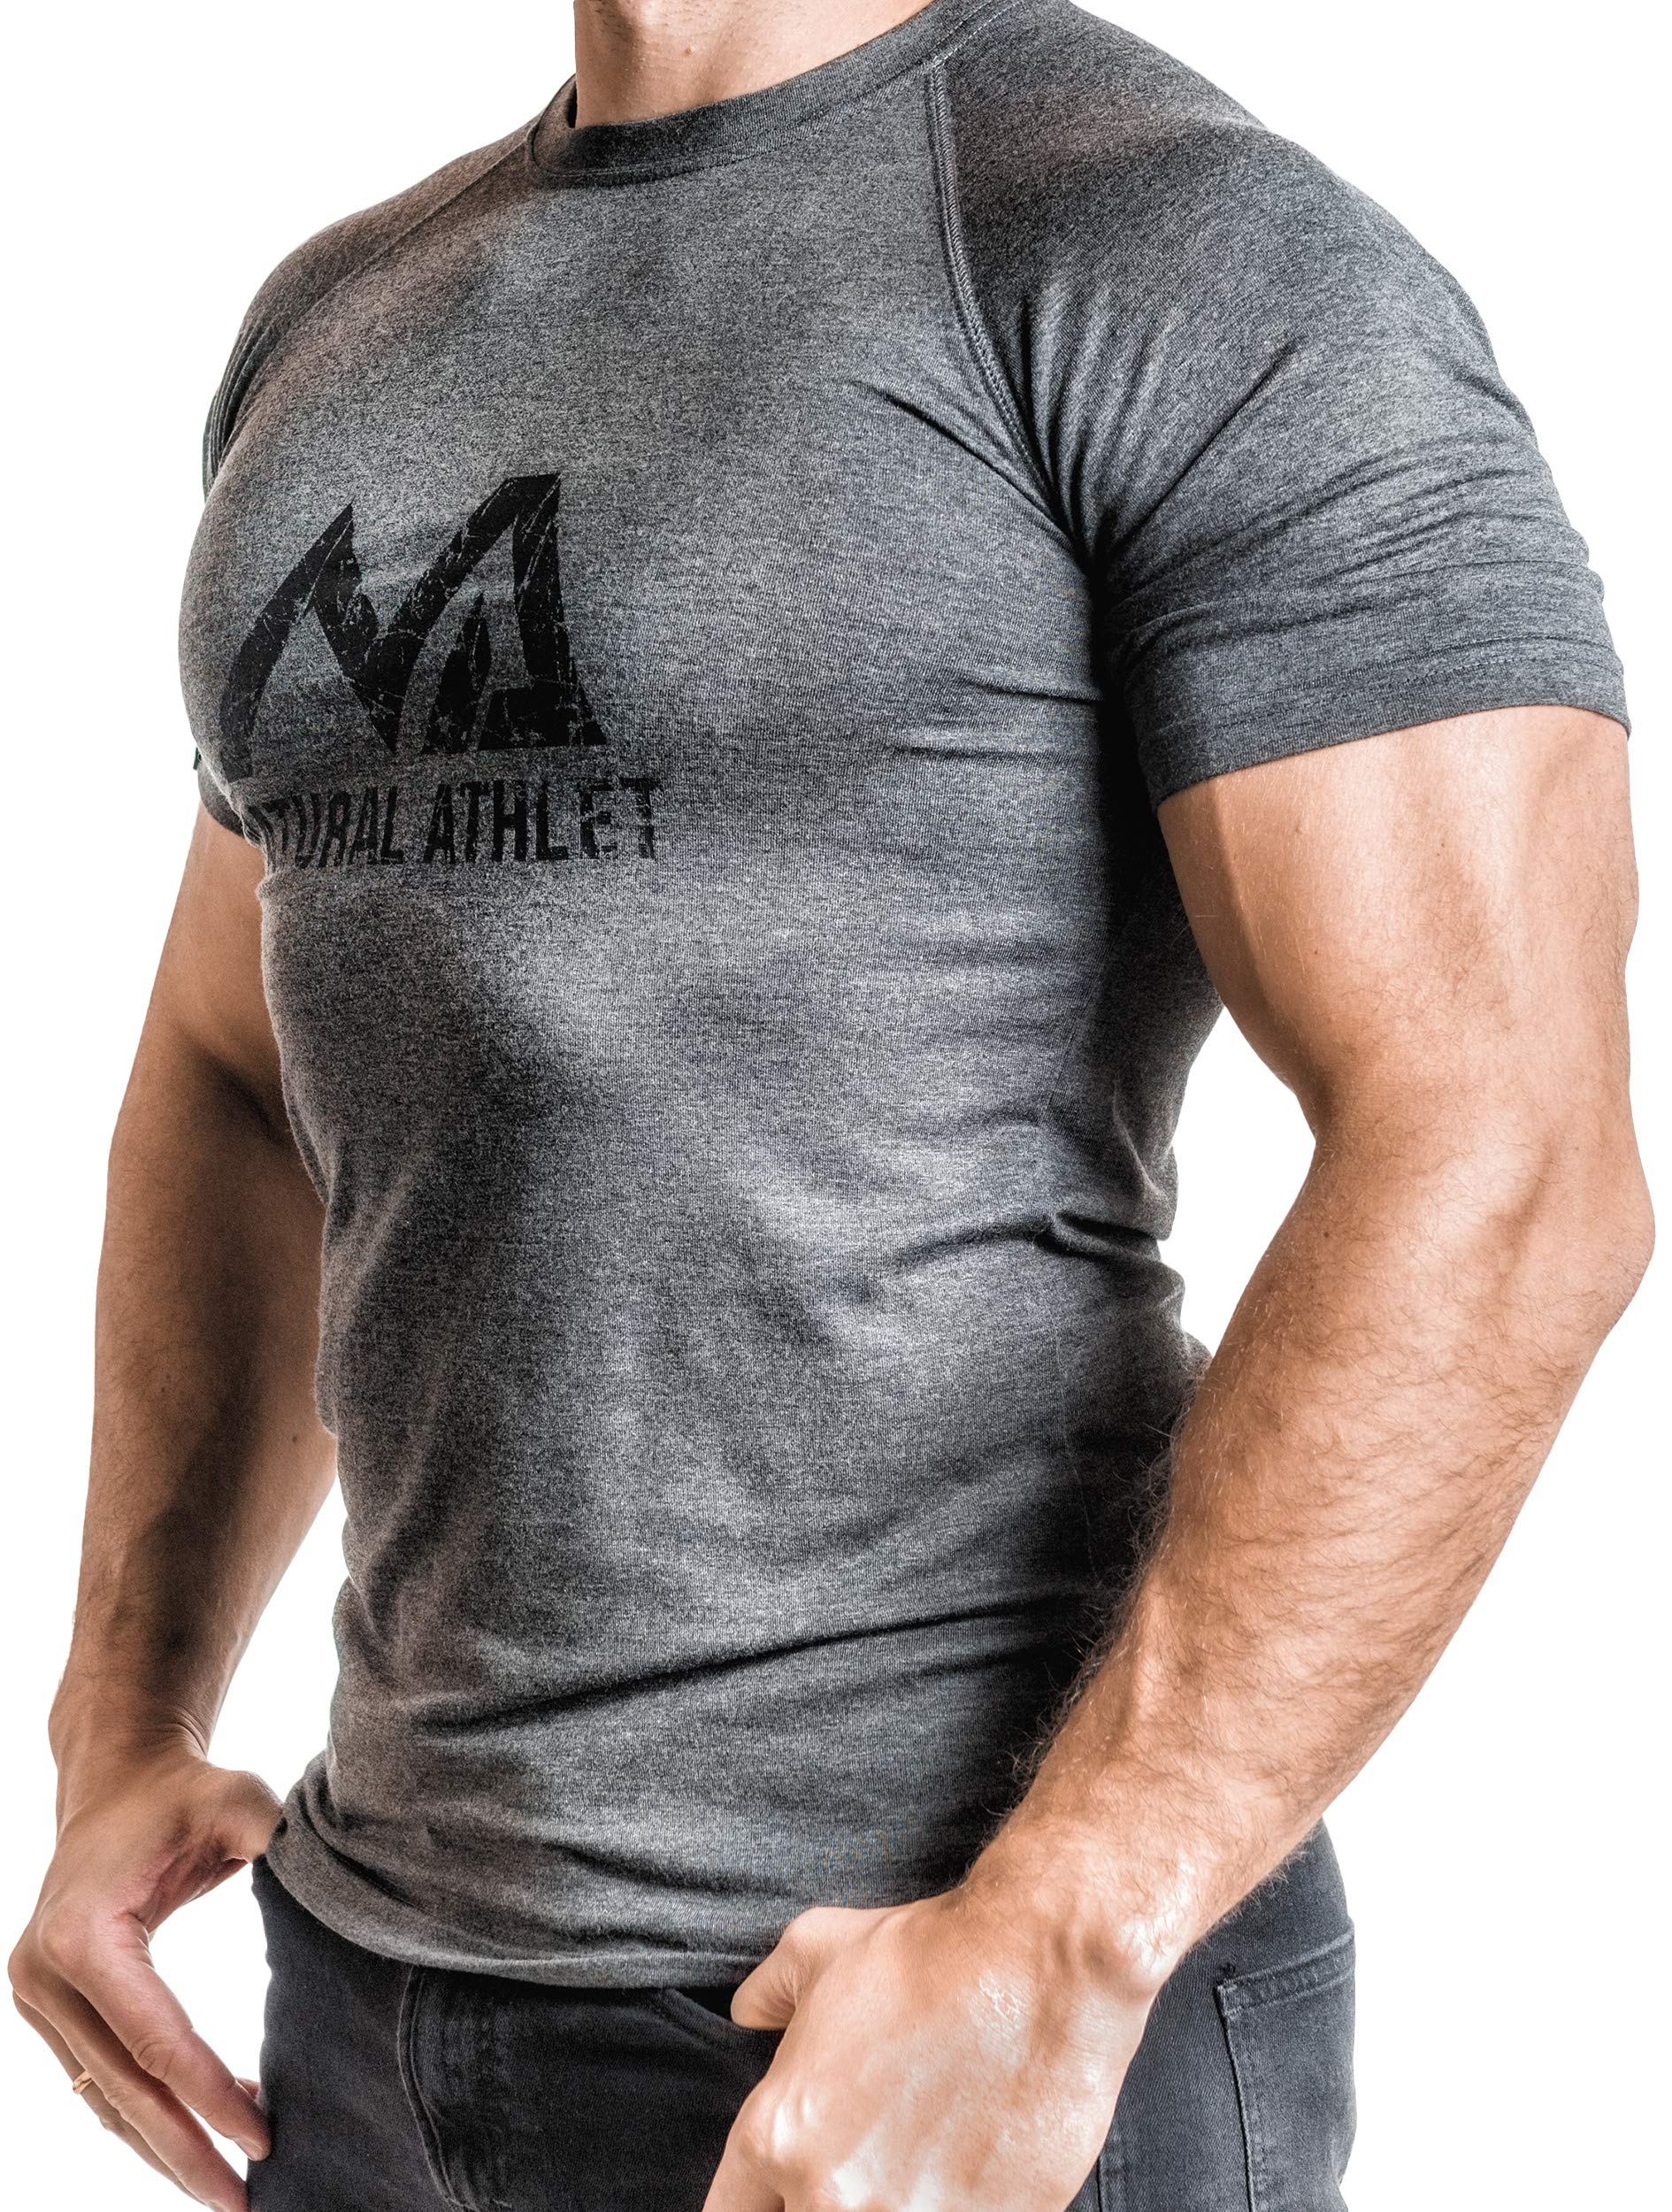 09beceaade4f92 Herren Fitness T-Shirt meliert - Männer Kurzarm Shirt für Gym   Training -  Passform Slim-Fit